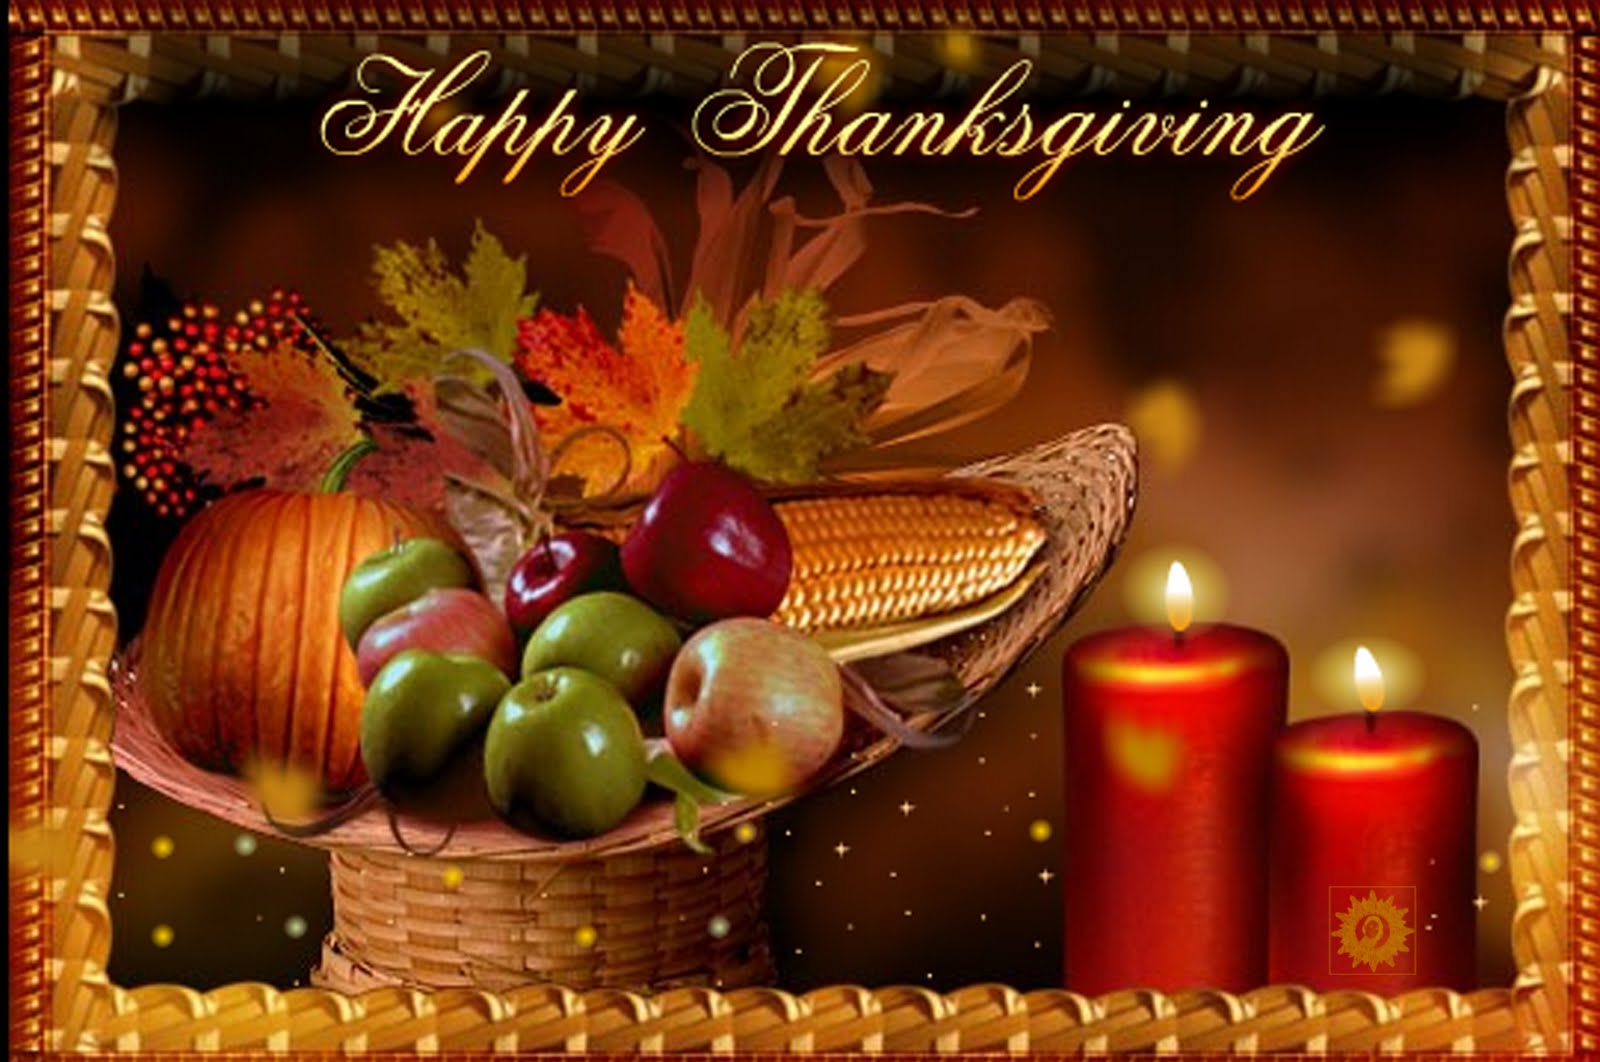 Thanksgiving Wallpapers Thanksgiving PC Wallpapers 1600x1062